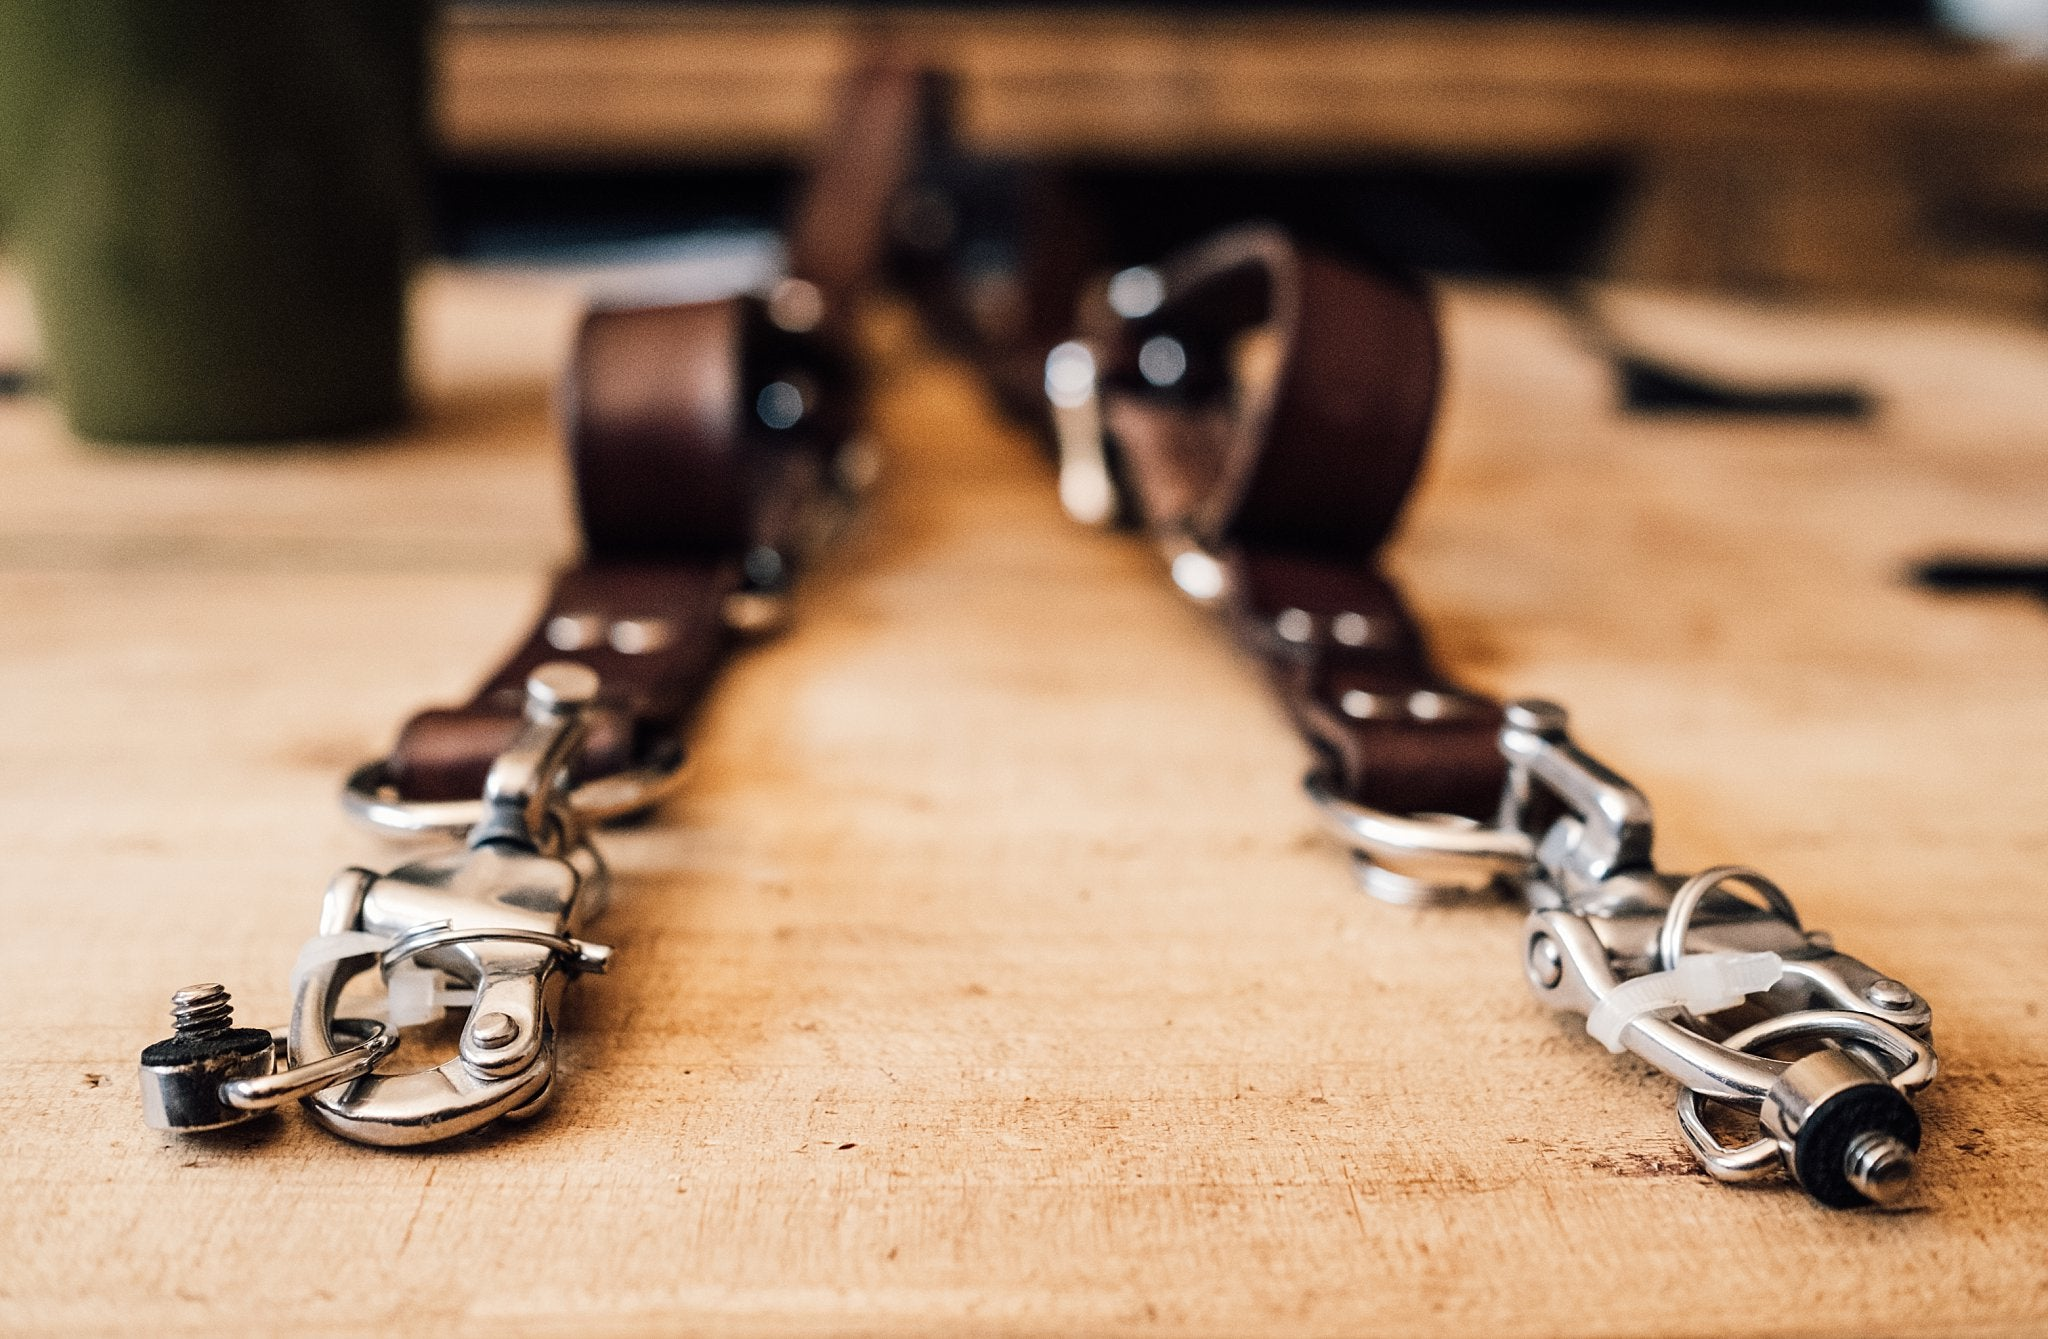 Cloverlily Double Camera Harness